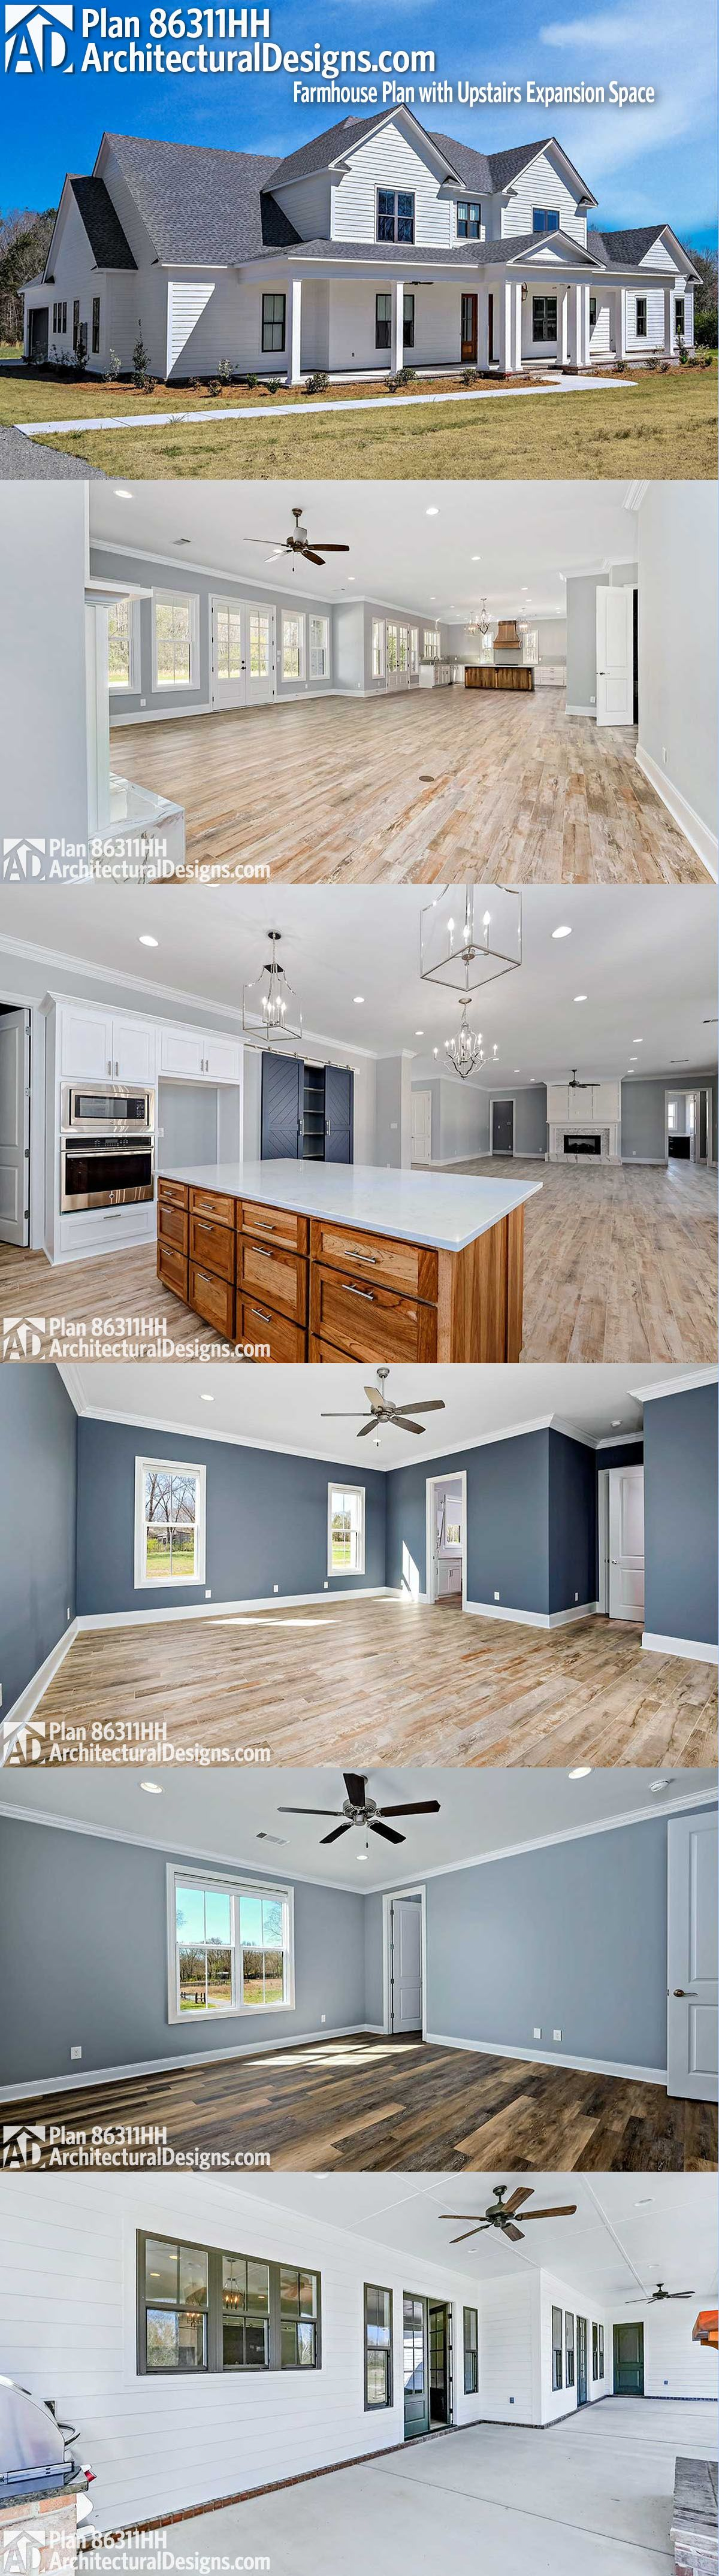 Architectural designs farmhouse plan hh gives you br ba sq ft more photos online ready when are where do want to build also rh pinterest